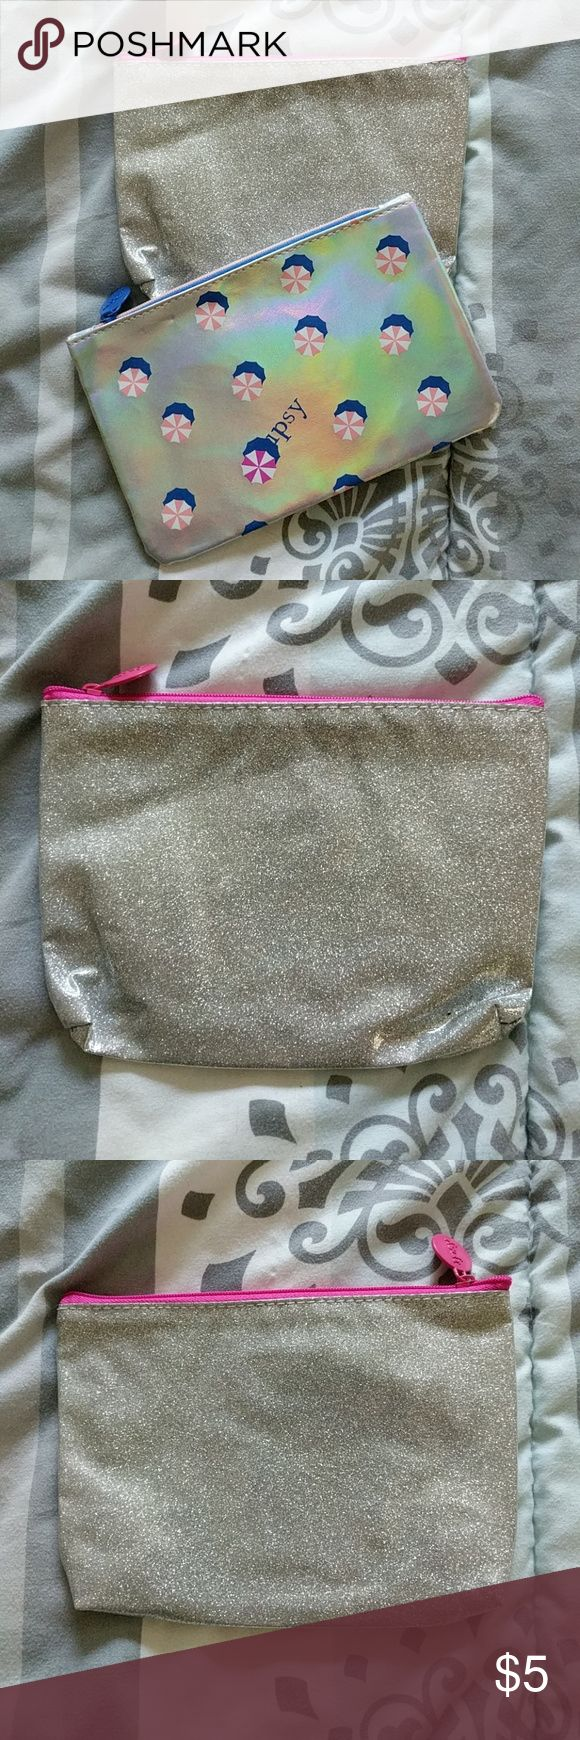 Ipsy Cosmetic Bag Set (2) / Silver These bags are in used condition.  ALL listings are priced at $5 (final), so no offers will be considered. However, I do provide a discount for bundles of 4+!   NOTICE: If you create a bundle and it weighs more than 5 LBS, I will cancel the order. I can not pay for the added shipping cost. Please keep this in mind.   My home is a SMOKE FREE / KITTY FRIENDLY home. Thank you!! :) Ipsy Bags Cosmetic Bags & Cases